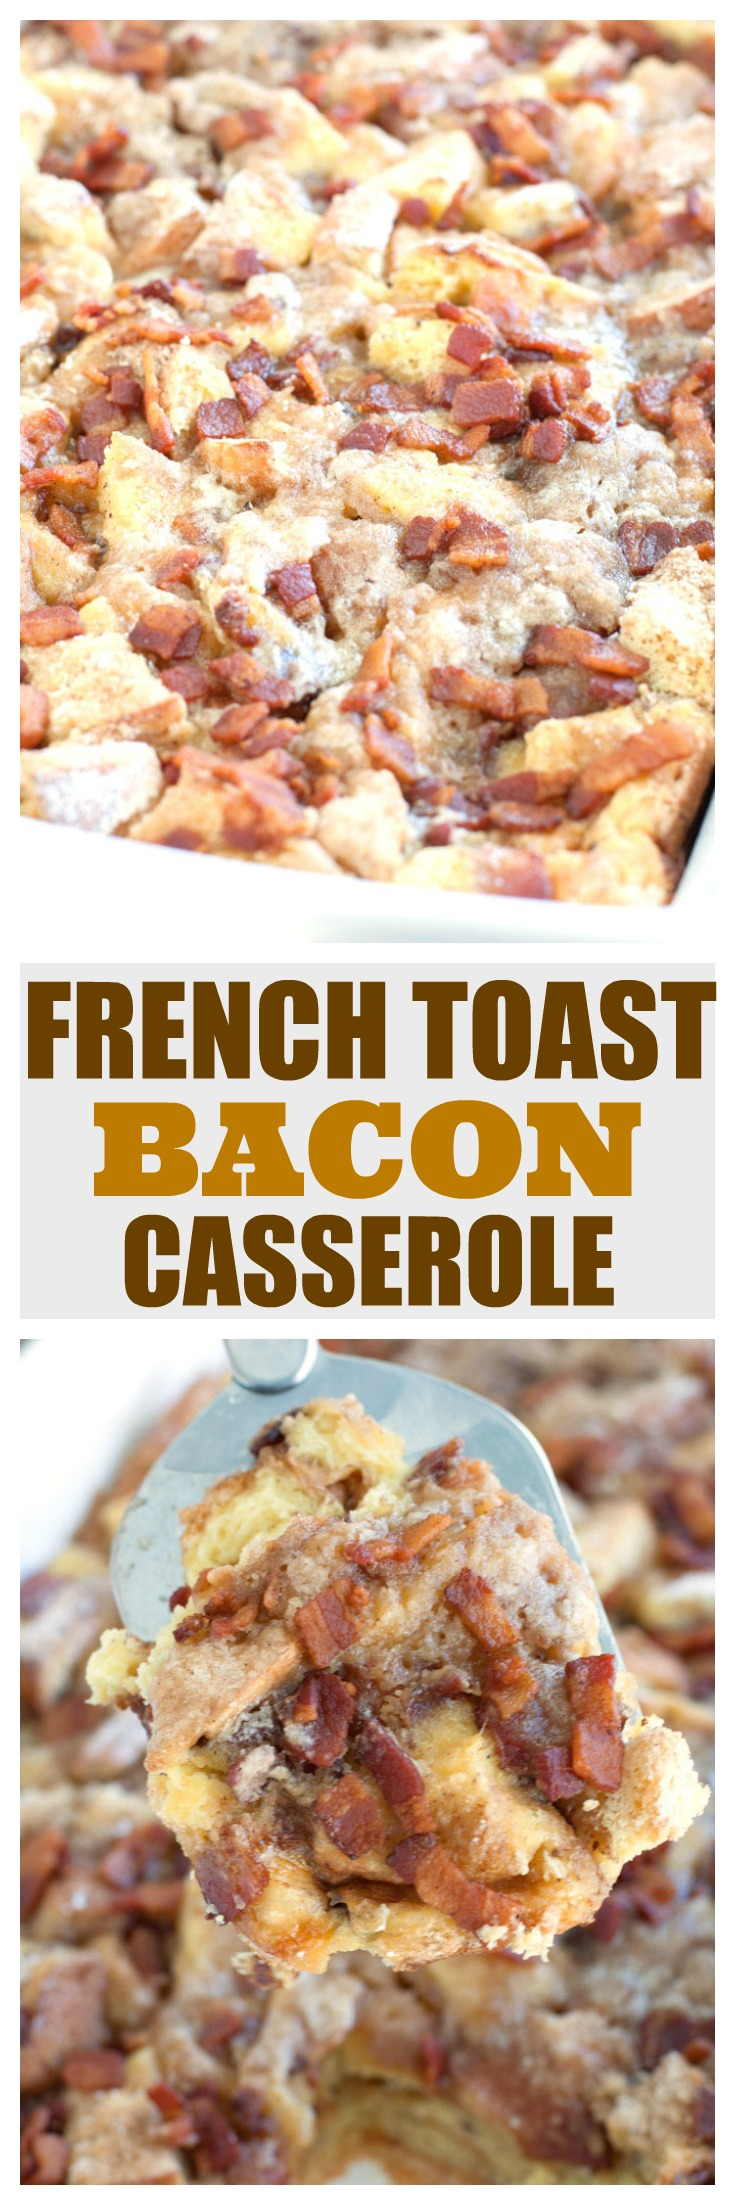 french toast bacon casserole pin